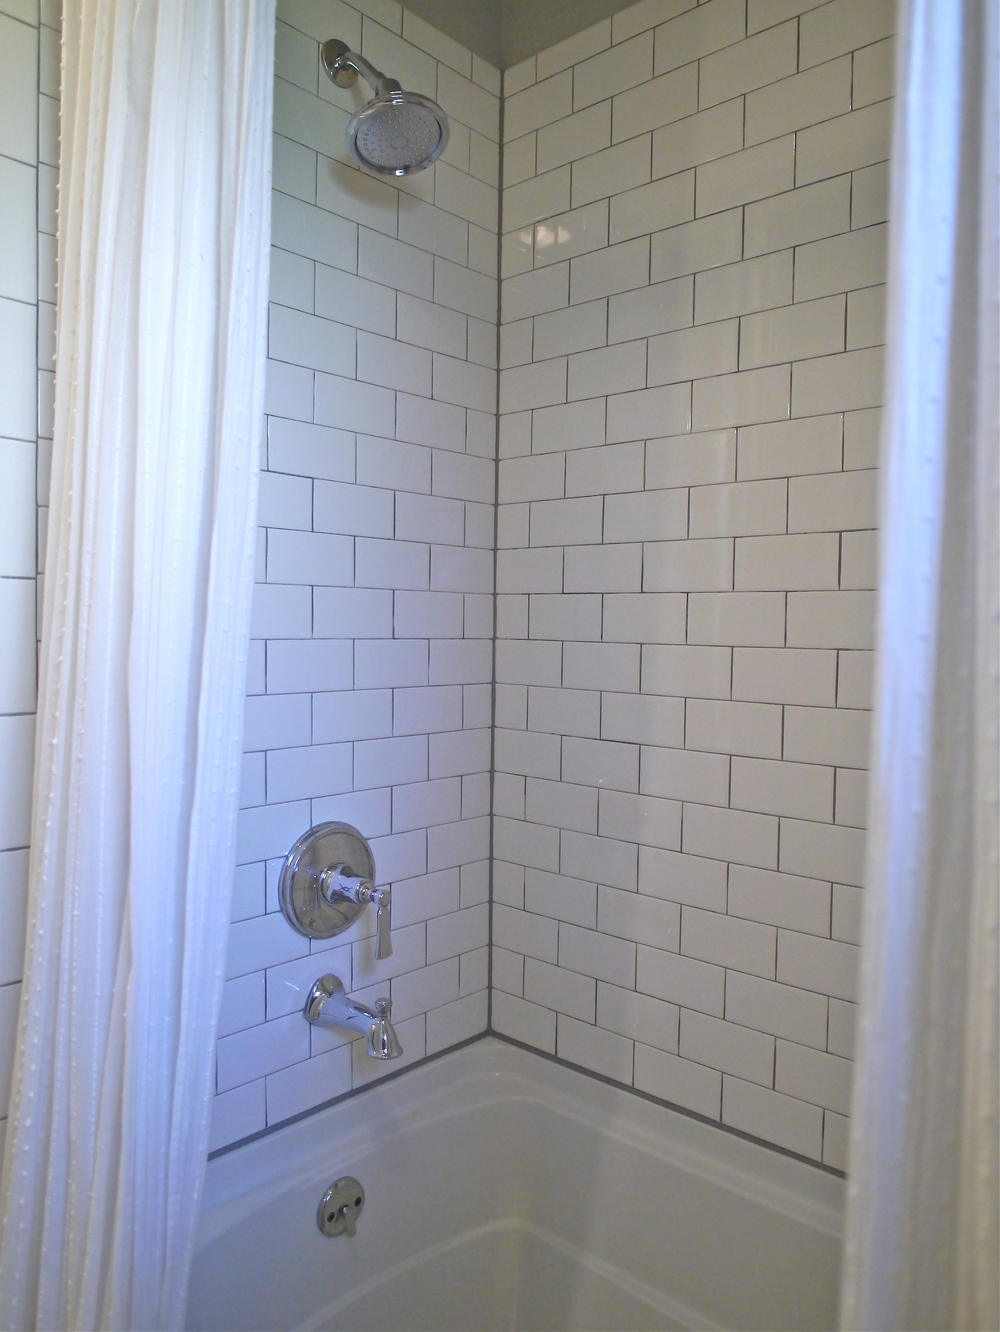 Bathroom Complete! — Homeworthy Notes